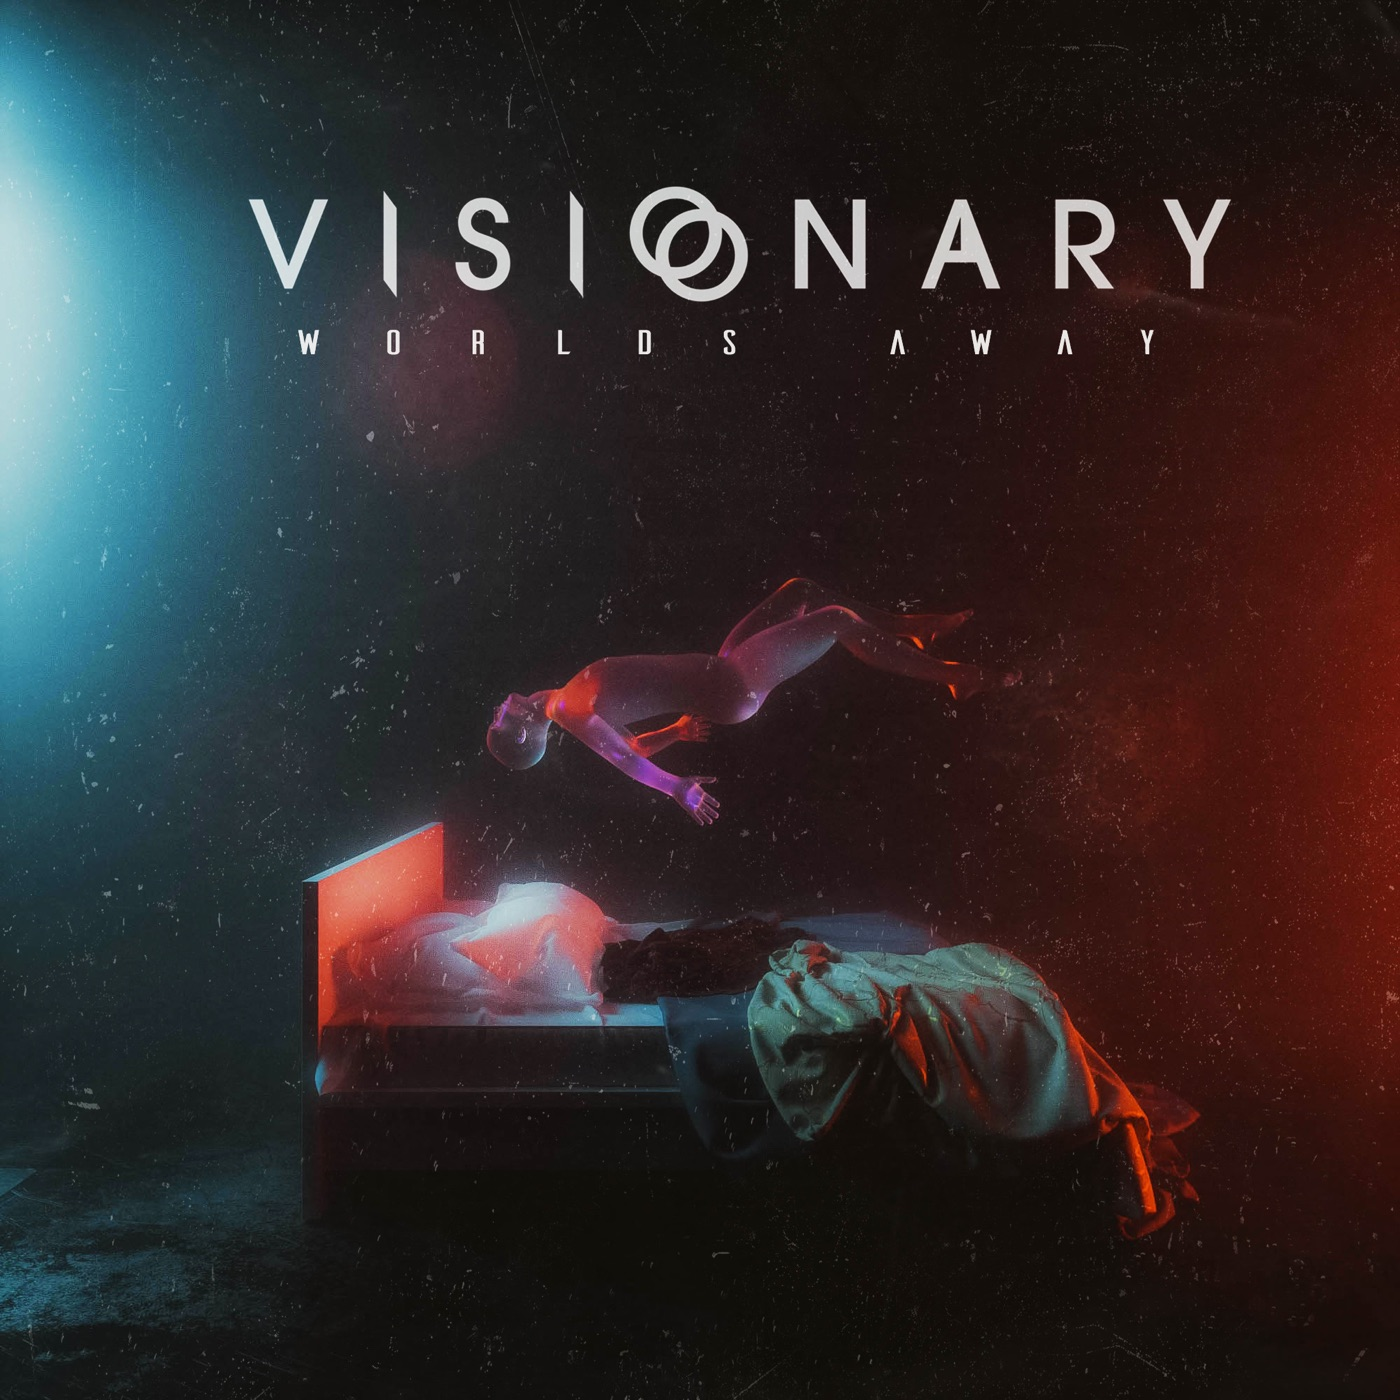 Visionary - Worlds Away [Single] (2018)